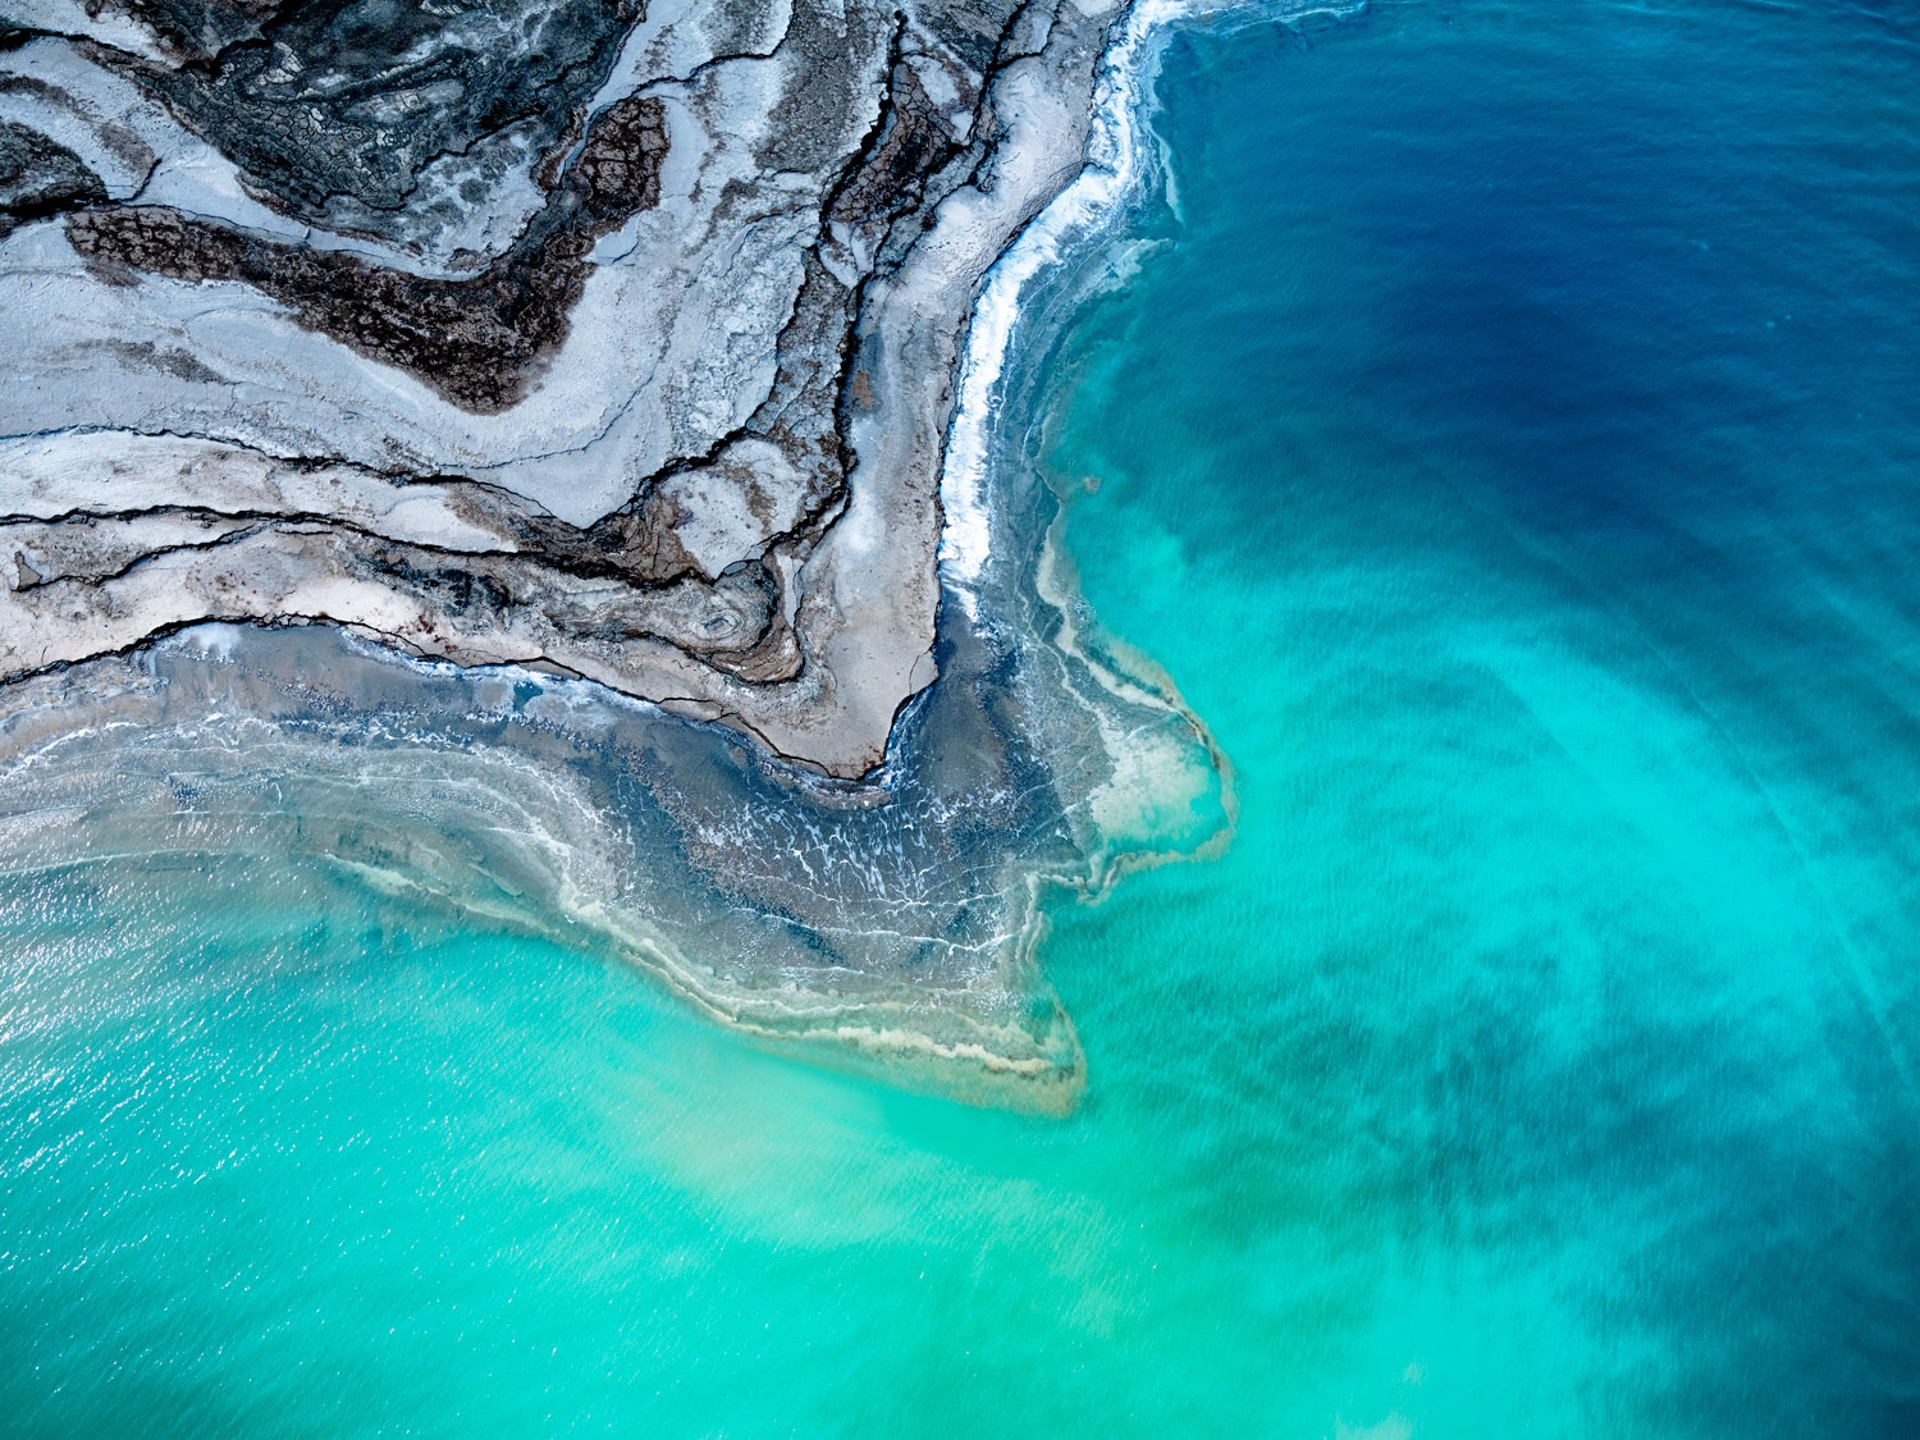 Layers in Life, Dead Sea, Israel / Photograph from Helicopter  Ed. 2/10 by Dinesh Boaz